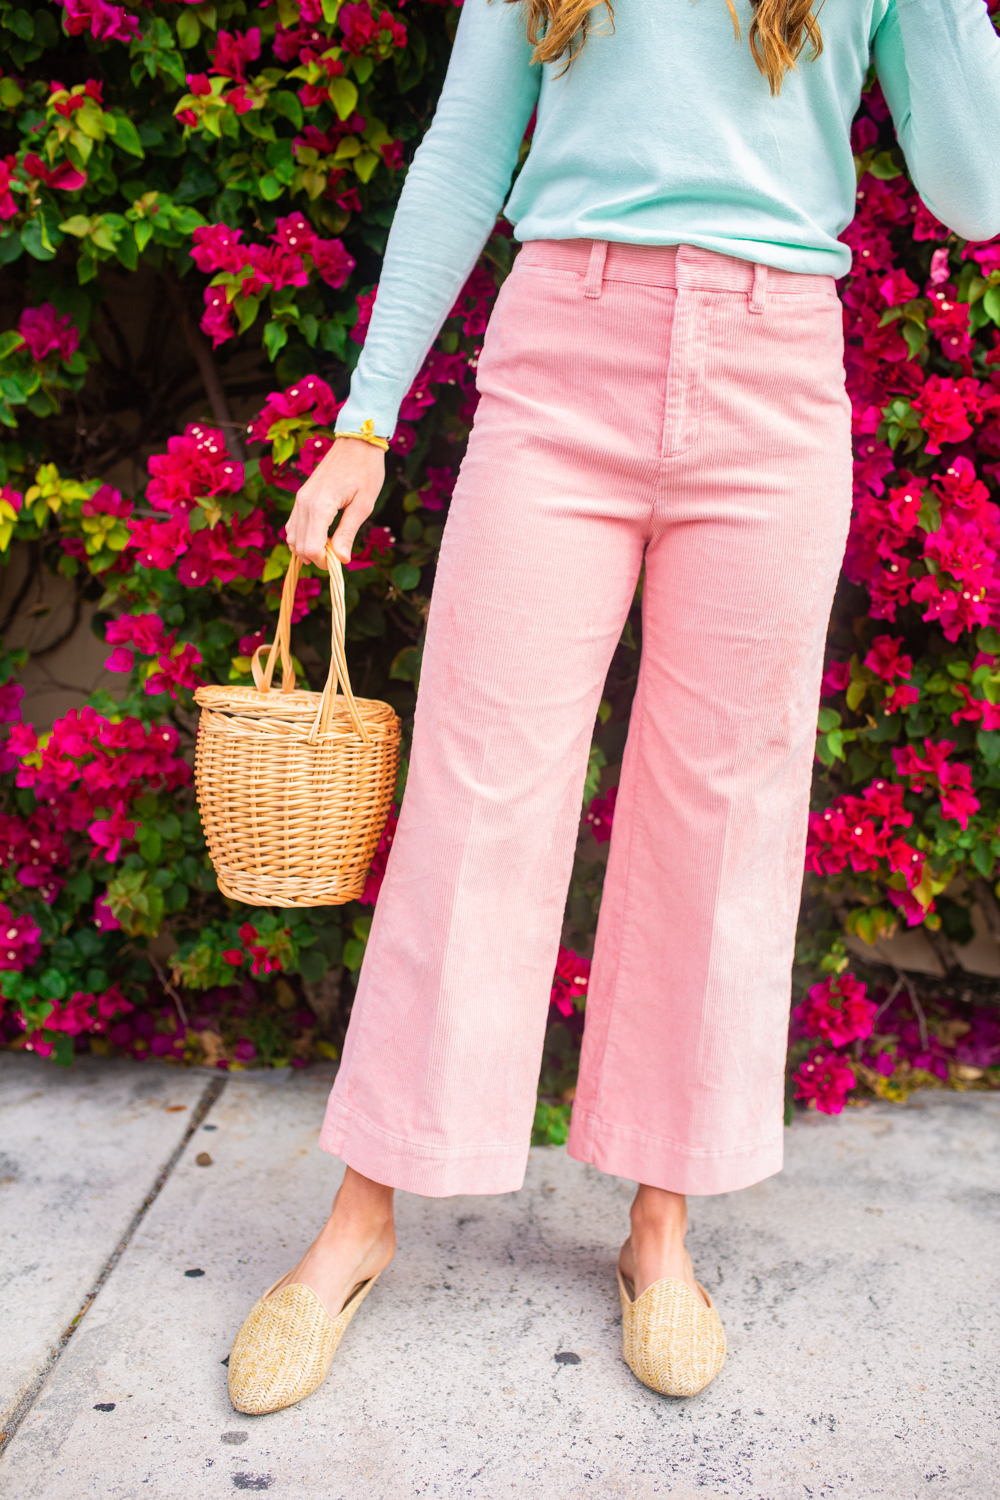 An Easy At Home Easter Outfit / What to Wear on Easter / Easter Outfit Ideas / Pastel Spring Outfit Idea - Sunshine Style, A Florida Fashion and Lifestyle Blog